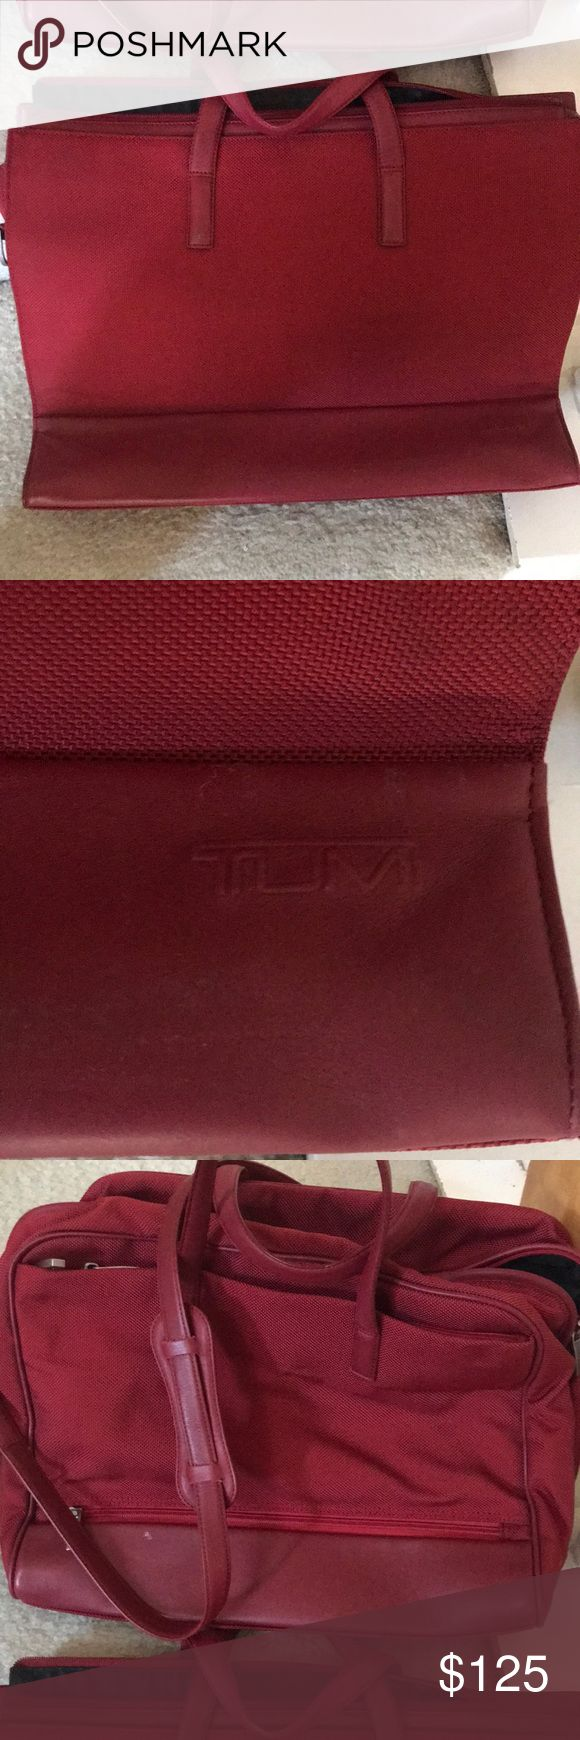 2 REd TUMI laptop bags Well maintained minimal scuff marks Price is for both laptop bags Both laptop bags have multi sectional compartments Larger laptop bag has a zipper that allows it to slide into your roller luggage handle Tumi Bags Laptop Bags